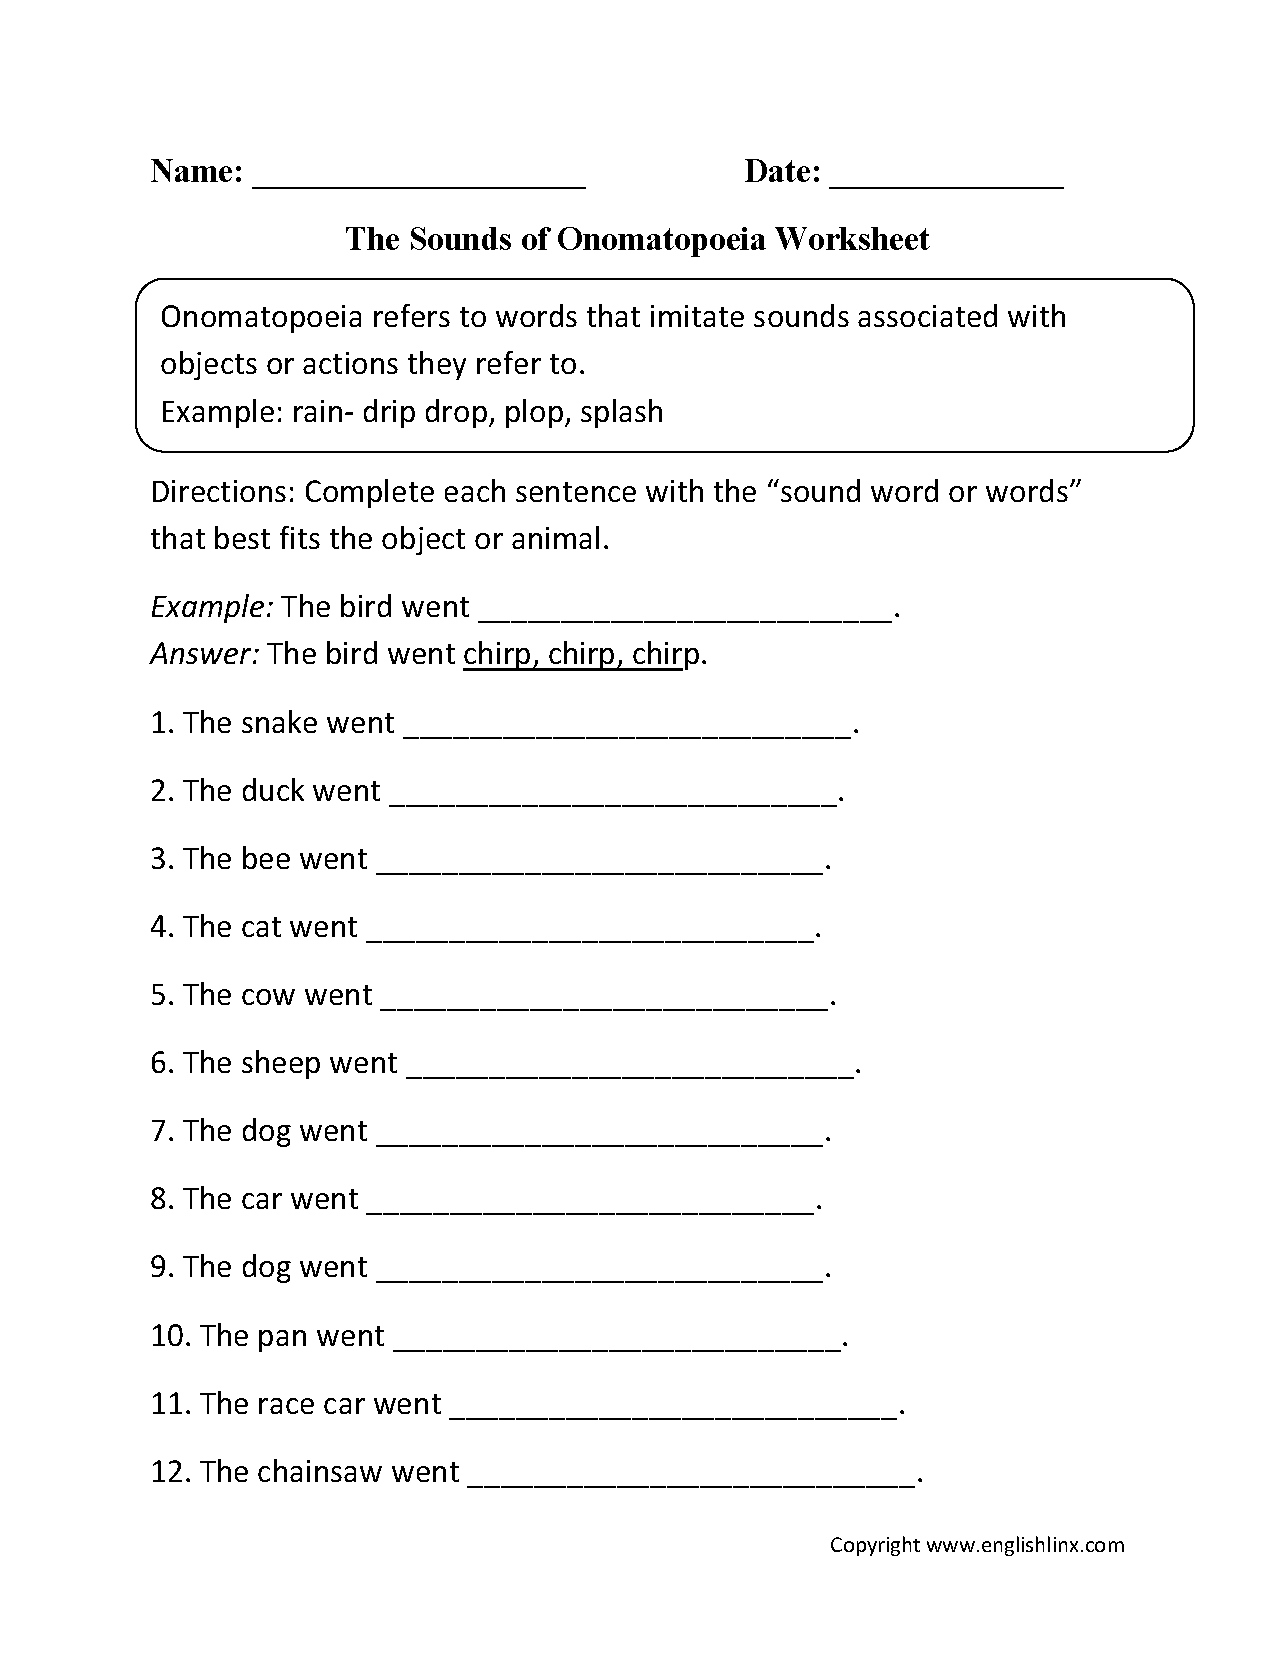 Aldiablosus  Marvellous Englishlinxcom  Onomatopoeia Worksheets With Likable Worksheet With Easy On The Eye Unlike Denominators Worksheets Also Preschool Printable Worksheets Free In Addition Factor Puzzles Worksheets And Worksheets On Following Directions As Well As Writing Process Worksheets Additionally Esl Food Worksheets From Englishlinxcom With Aldiablosus  Likable Englishlinxcom  Onomatopoeia Worksheets With Easy On The Eye Worksheet And Marvellous Unlike Denominators Worksheets Also Preschool Printable Worksheets Free In Addition Factor Puzzles Worksheets From Englishlinxcom